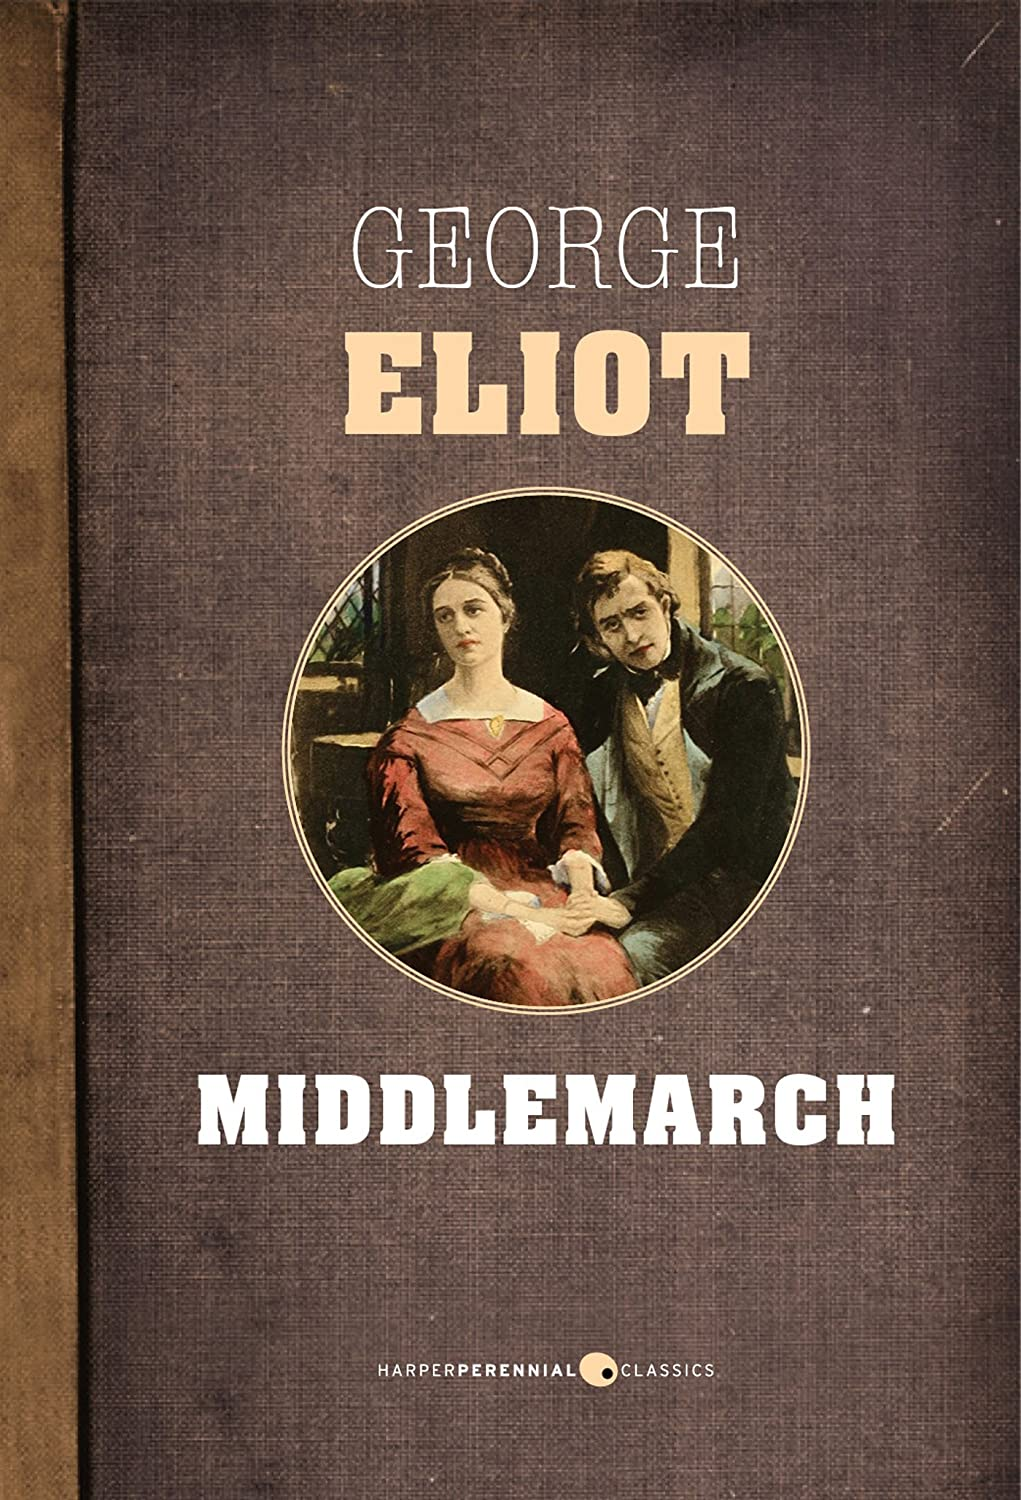 middlemarch by george eliot essays Immediately download the middlemarch summary, chapter-by-chapter analysis, book notes, essays, quotes, character descriptions, lesson plans, and more - everything you need for studying or teaching middlemarch.